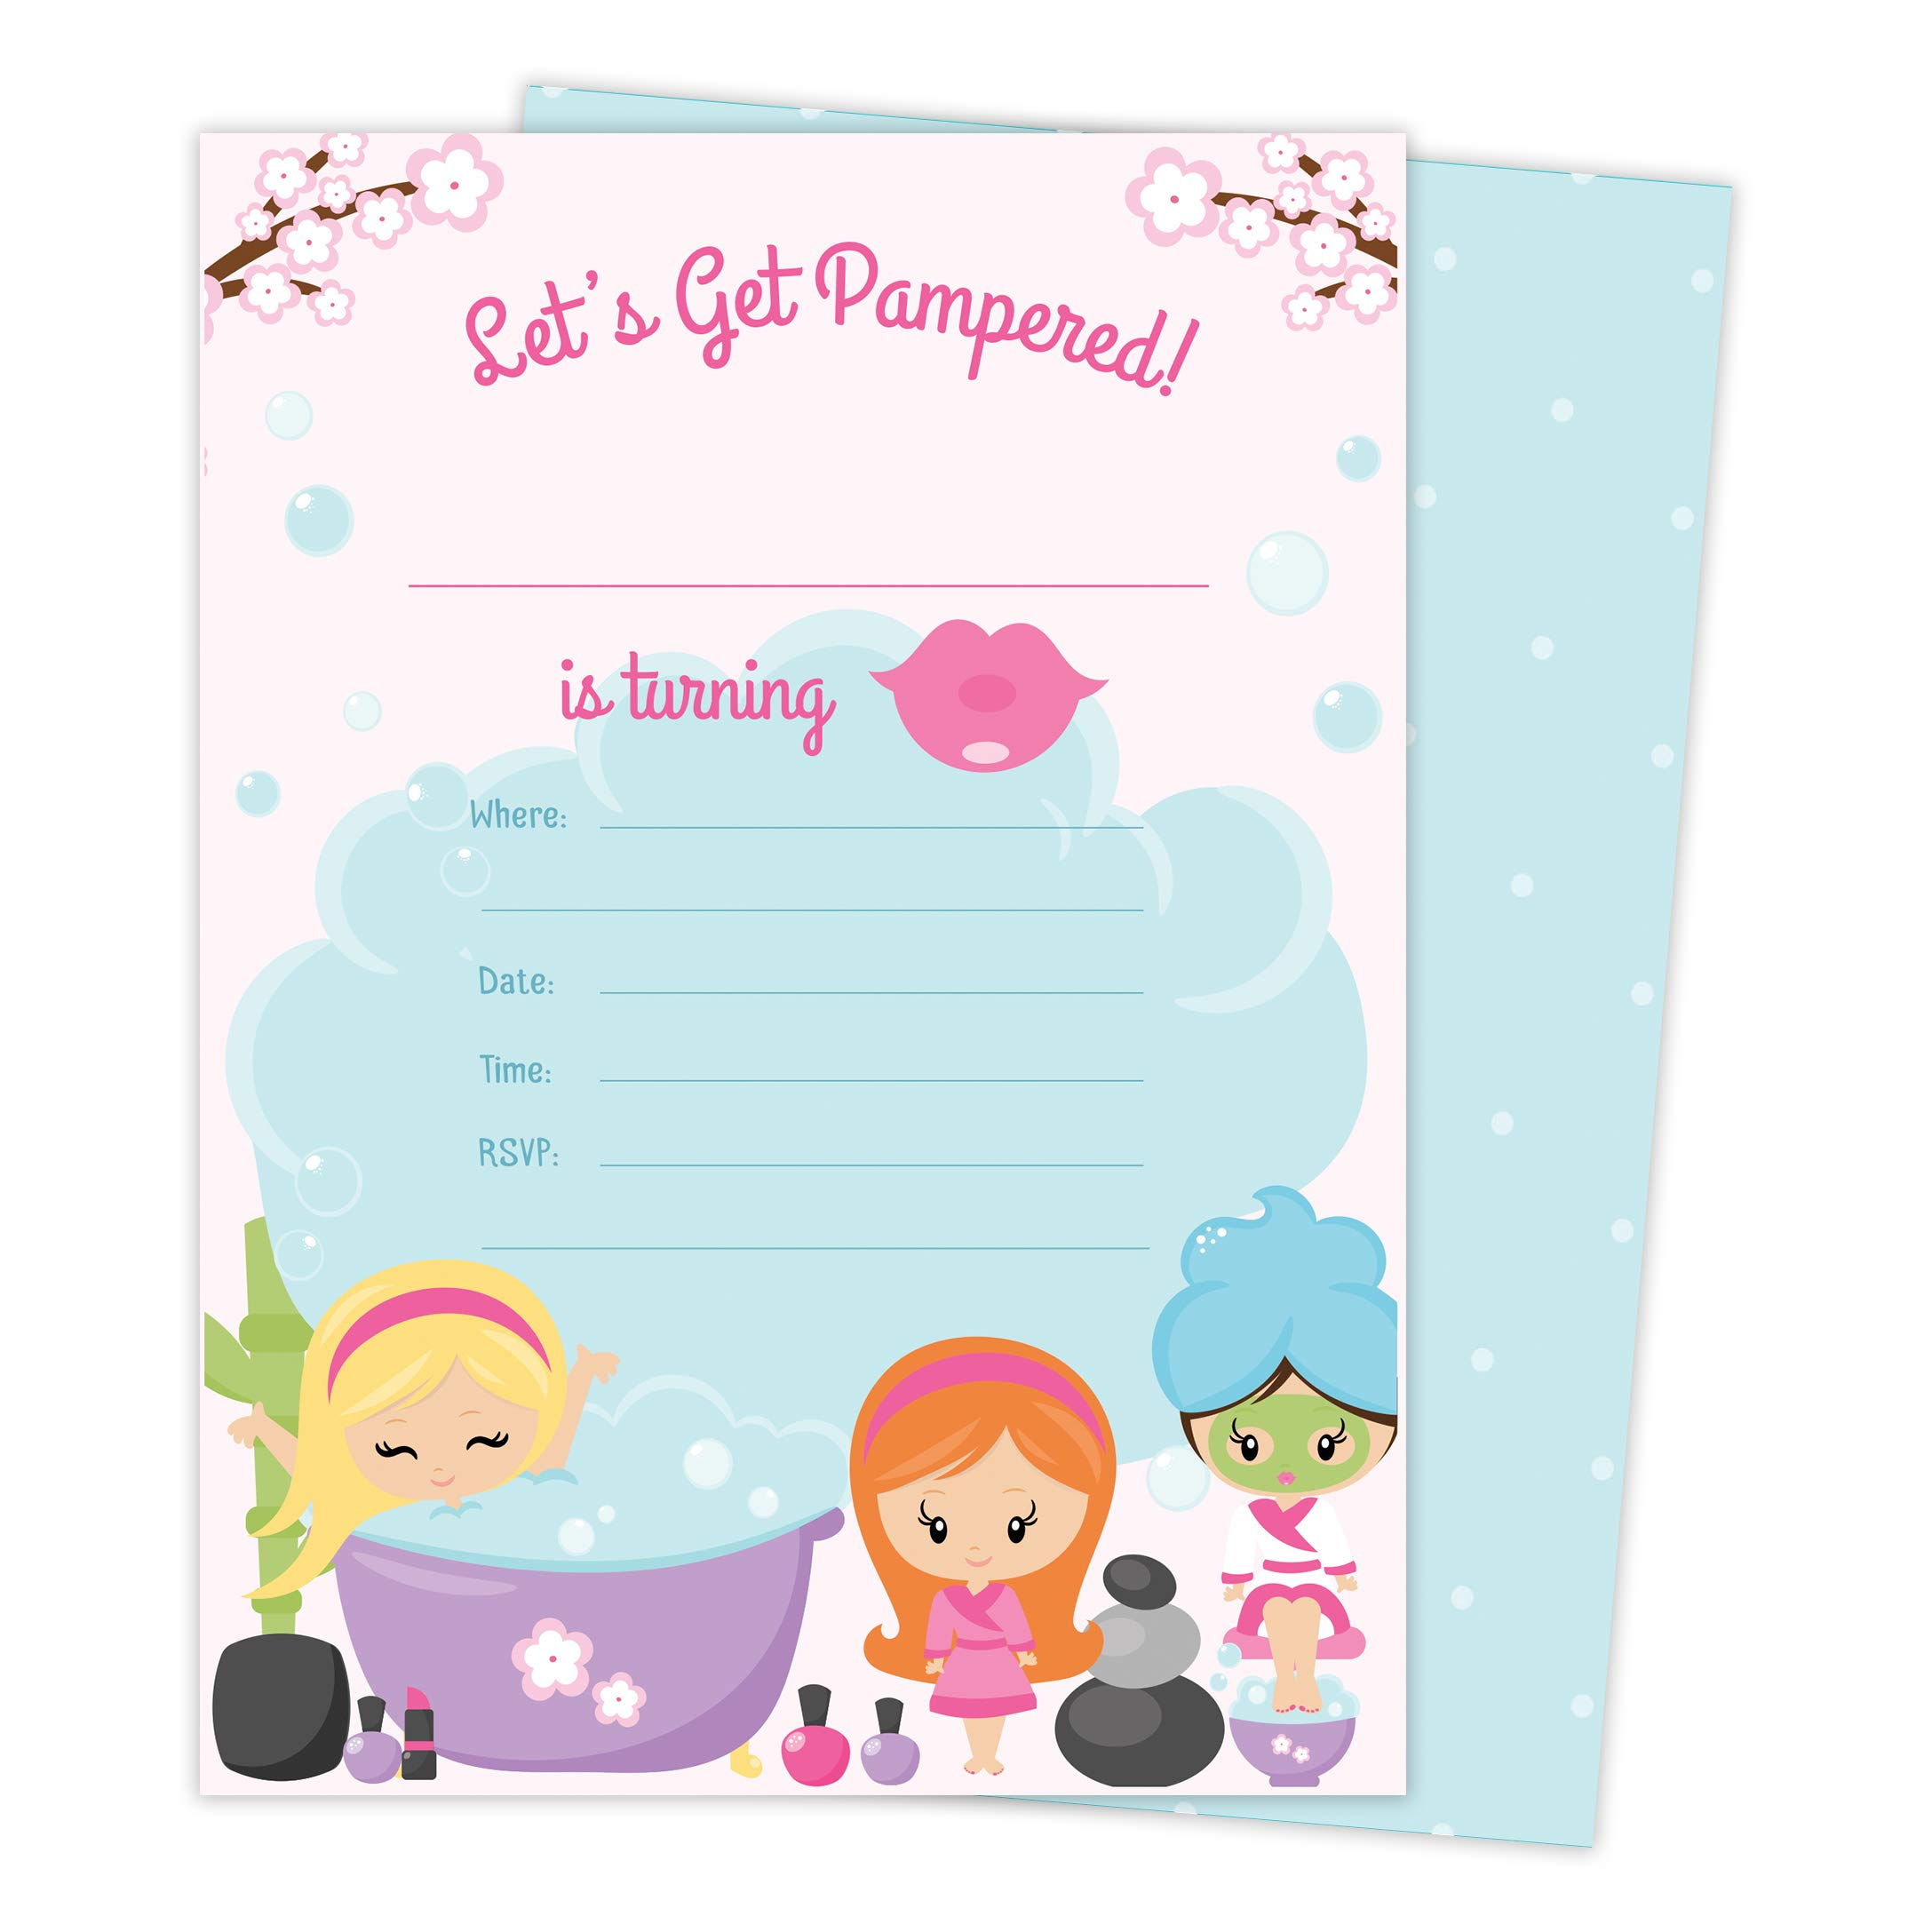 Spa Day 1 Happy Birthday Invitations Invite Cards (25 Count) With Envelopes & Seal Stickers Vinyl Girls Kids Party